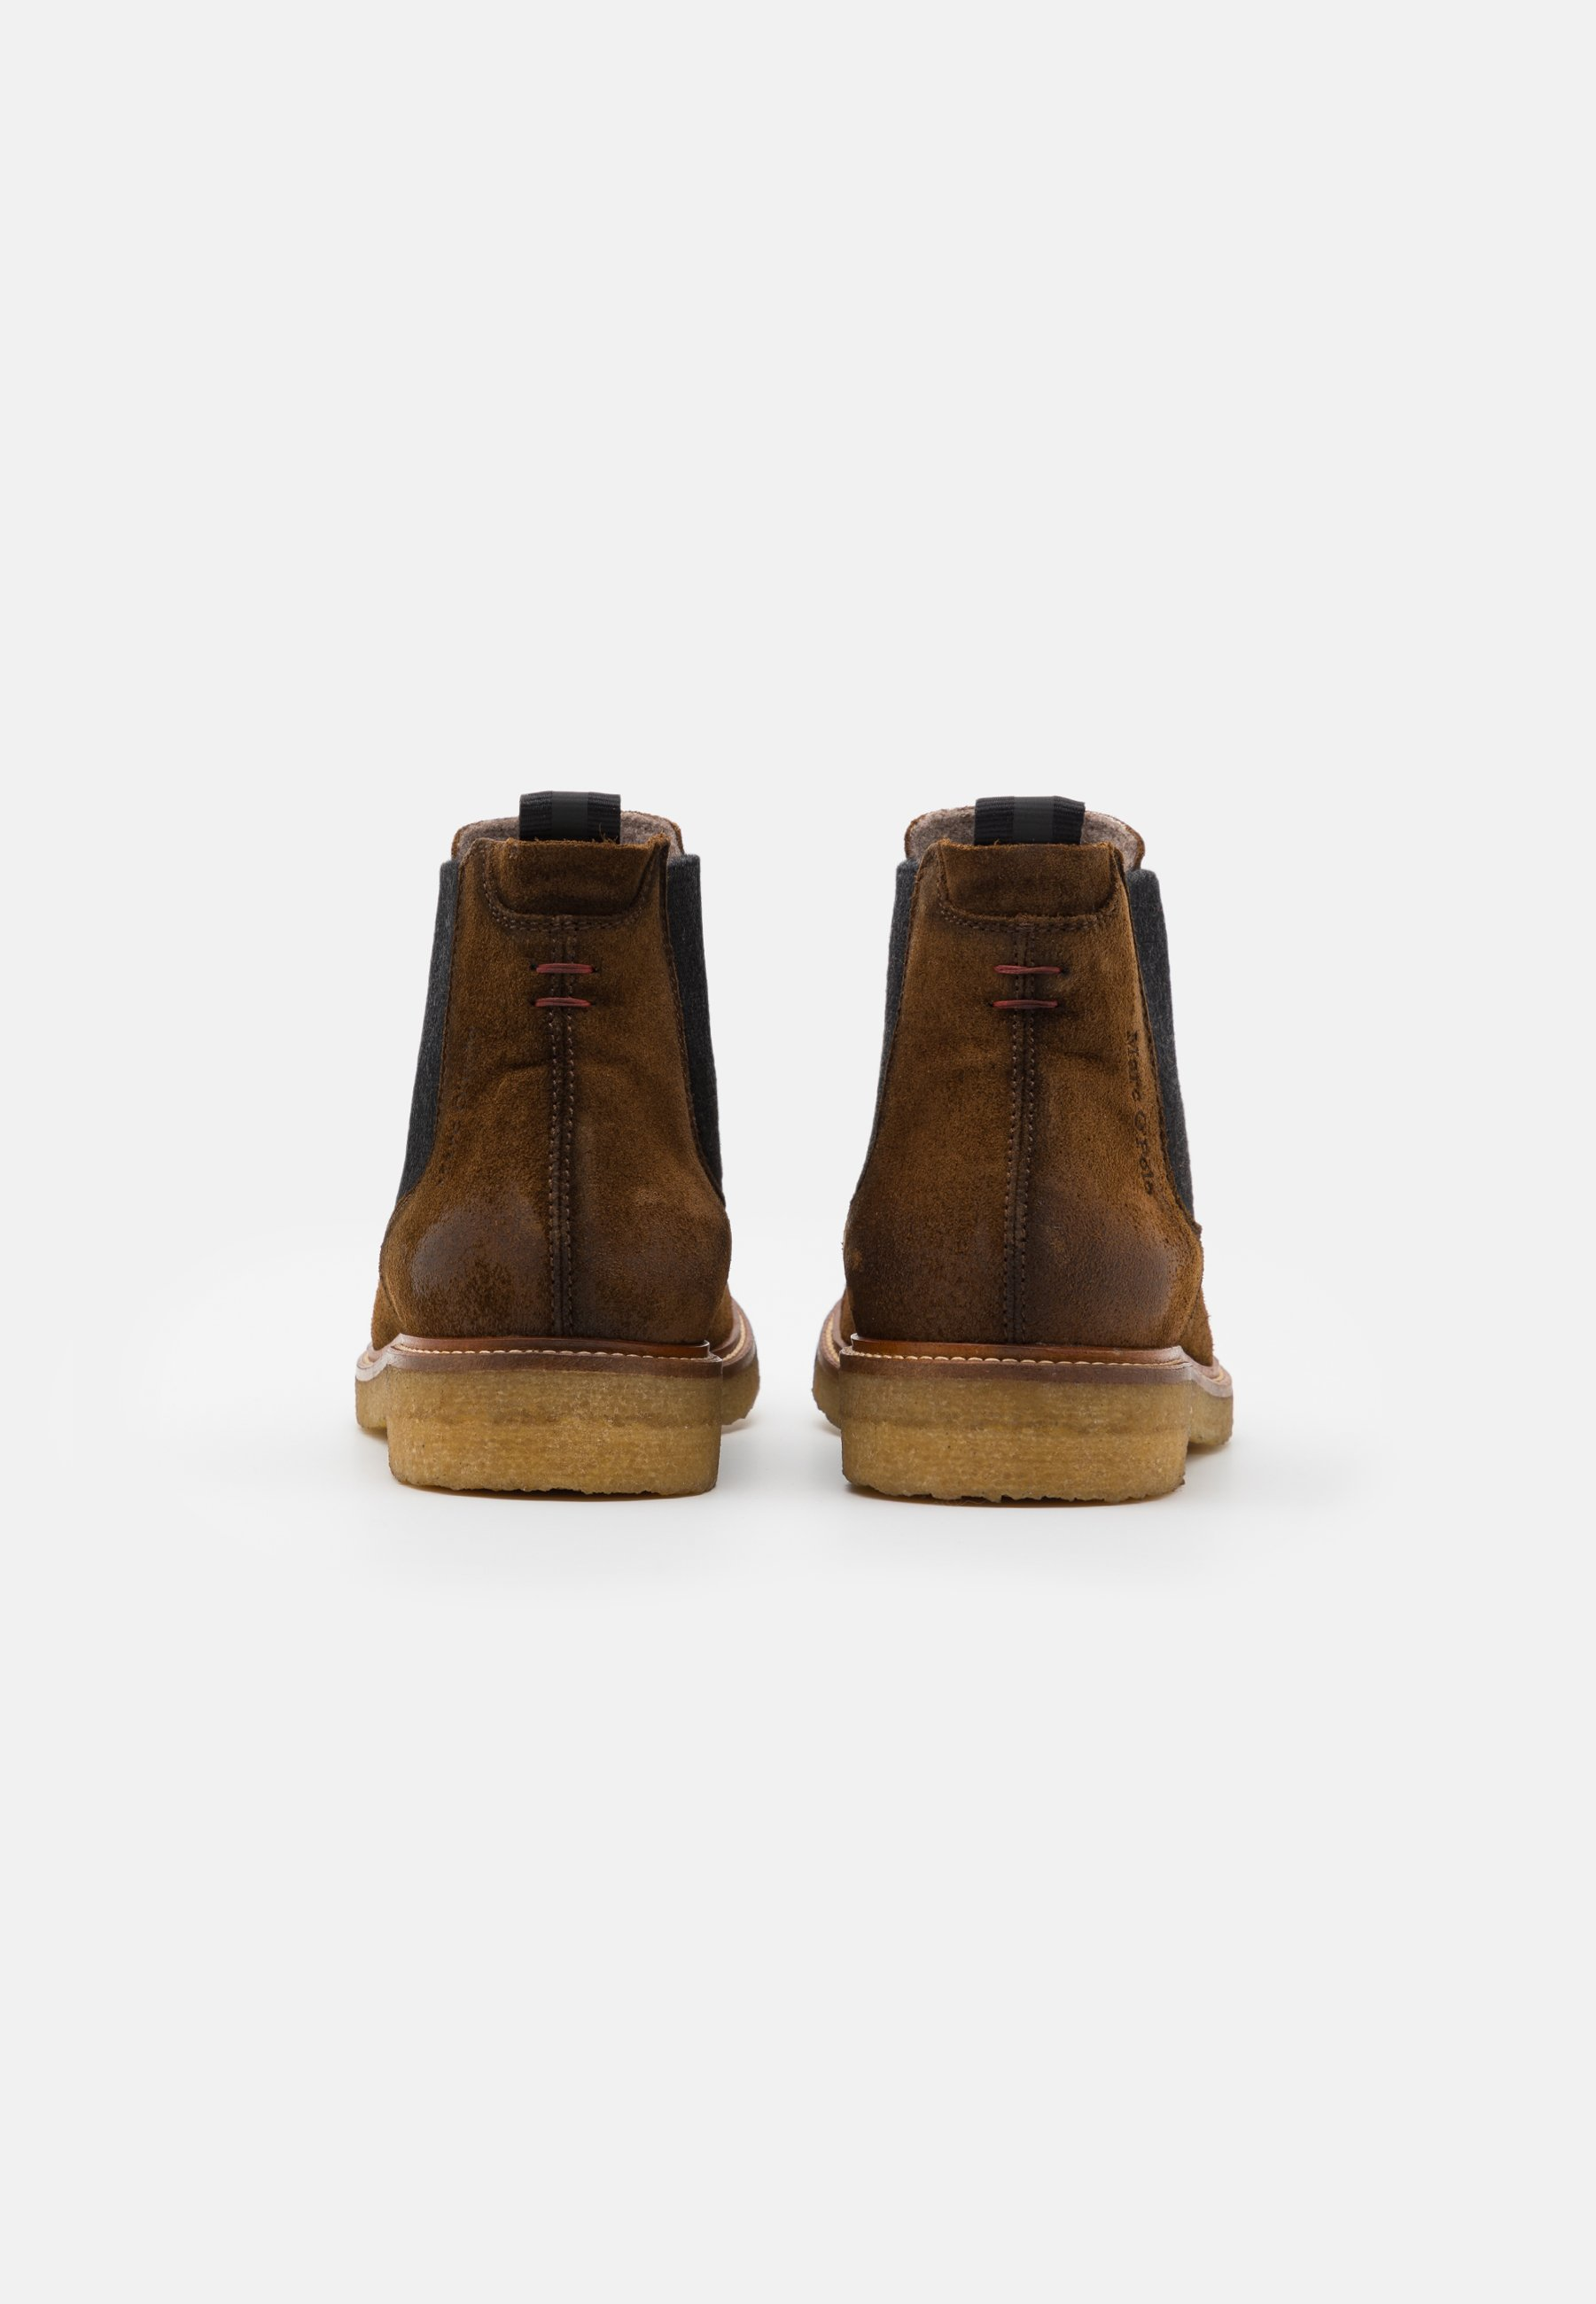 Meilleurs prix Marc O'Polo SUSTAINABLE CHELSEA BOOT Bottines walnut